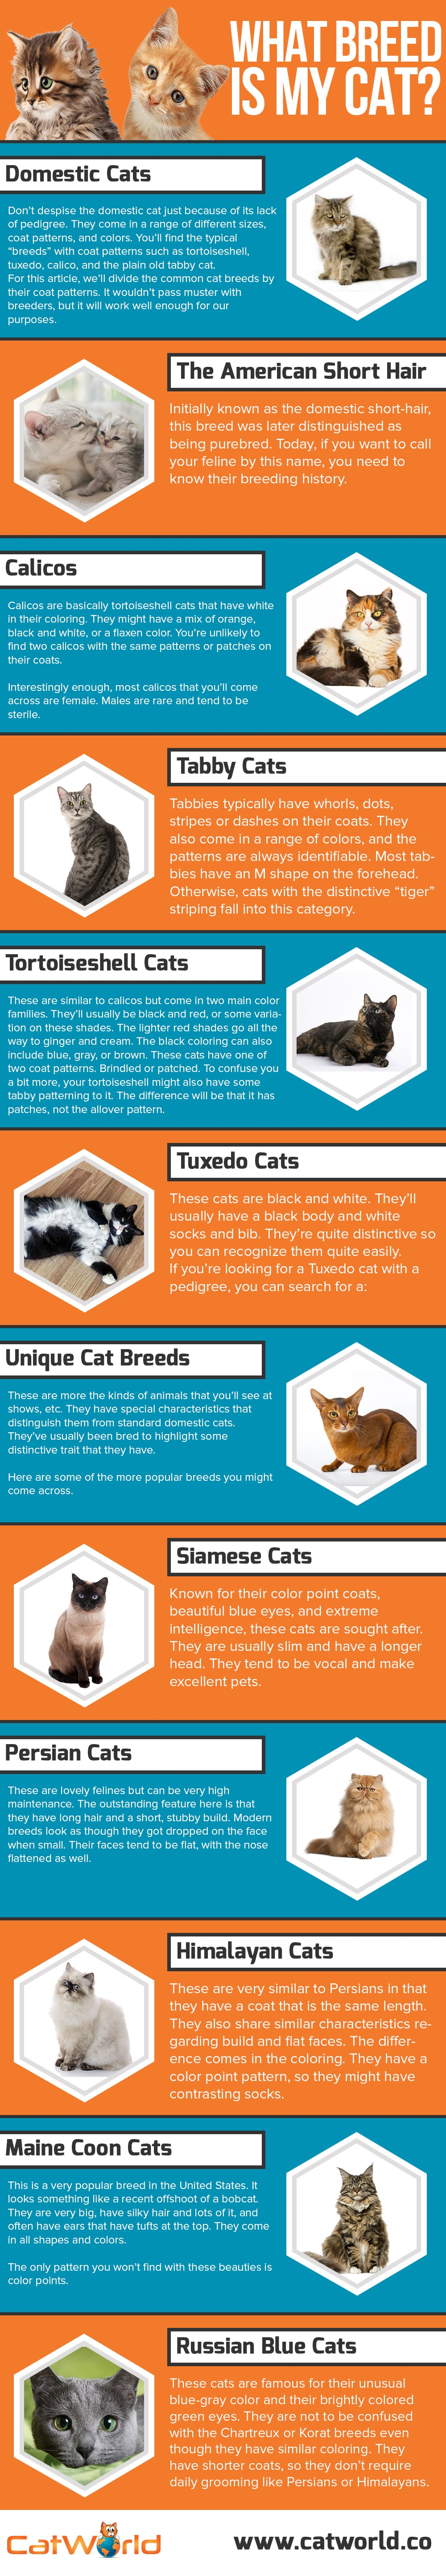 What breed is my cat info-graphic